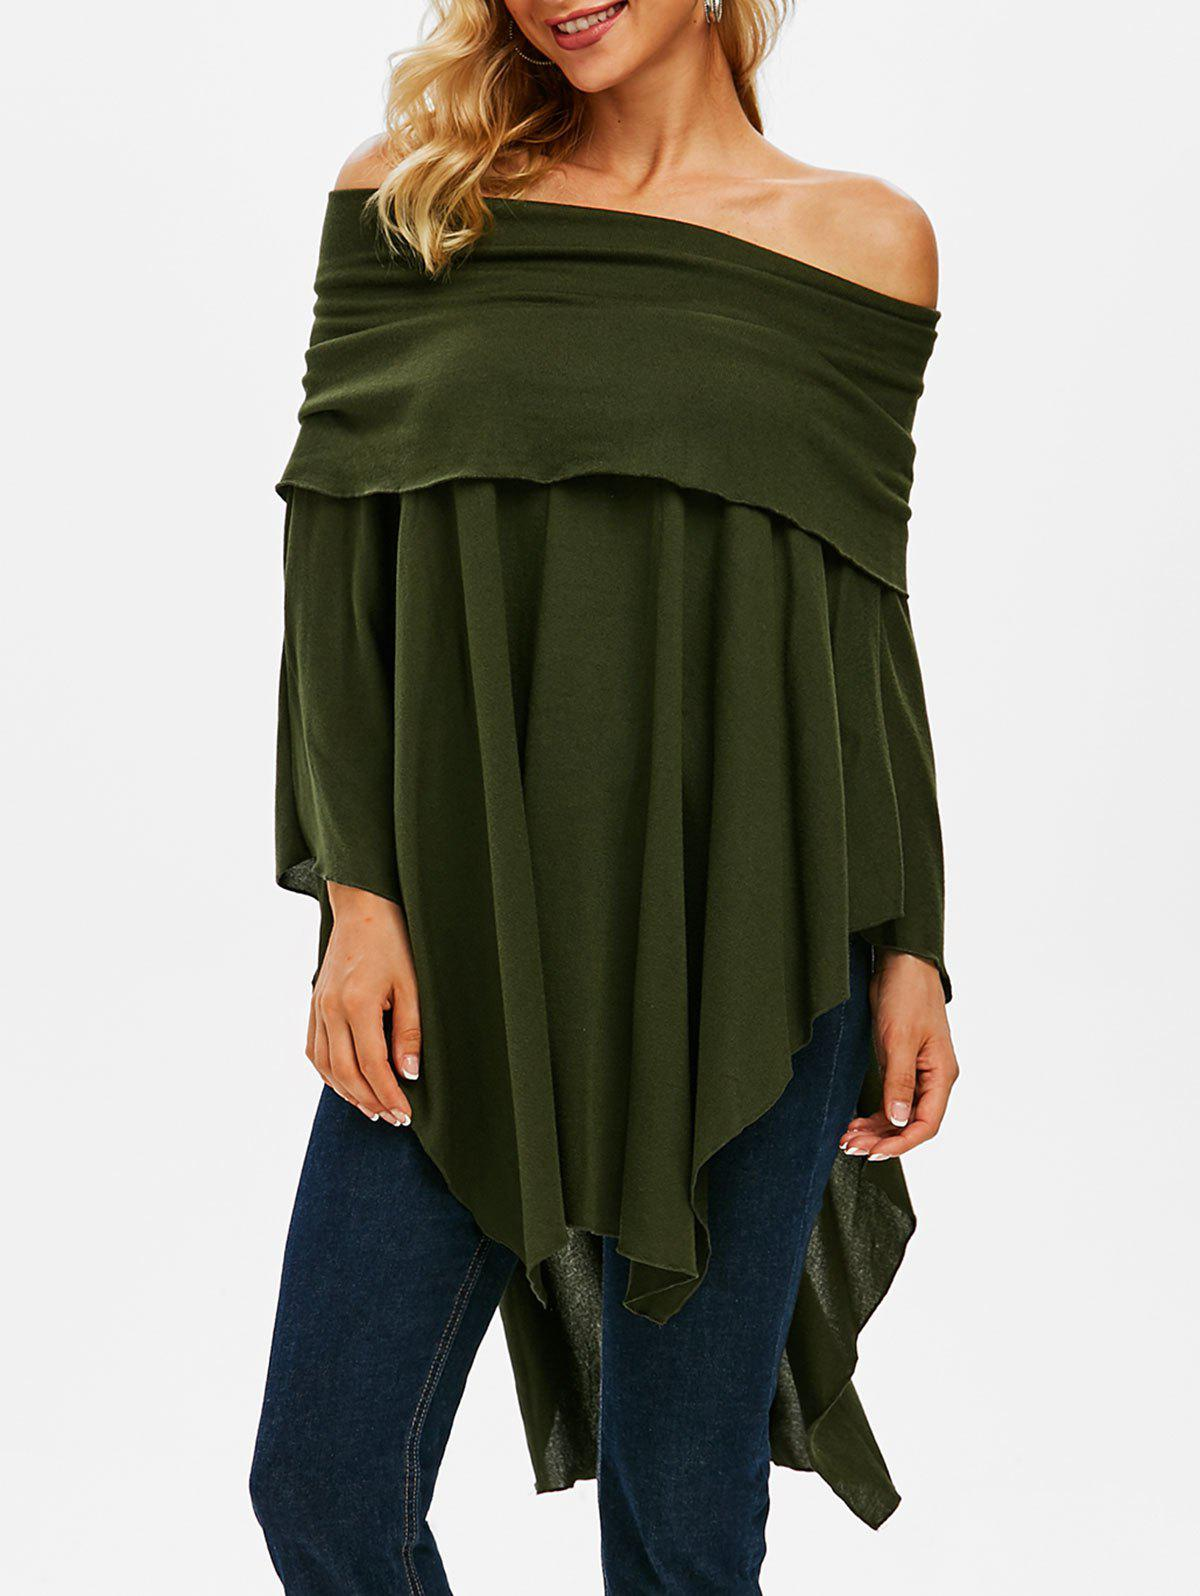 Fancy Off Shoulder Foldover Poncho Sweater